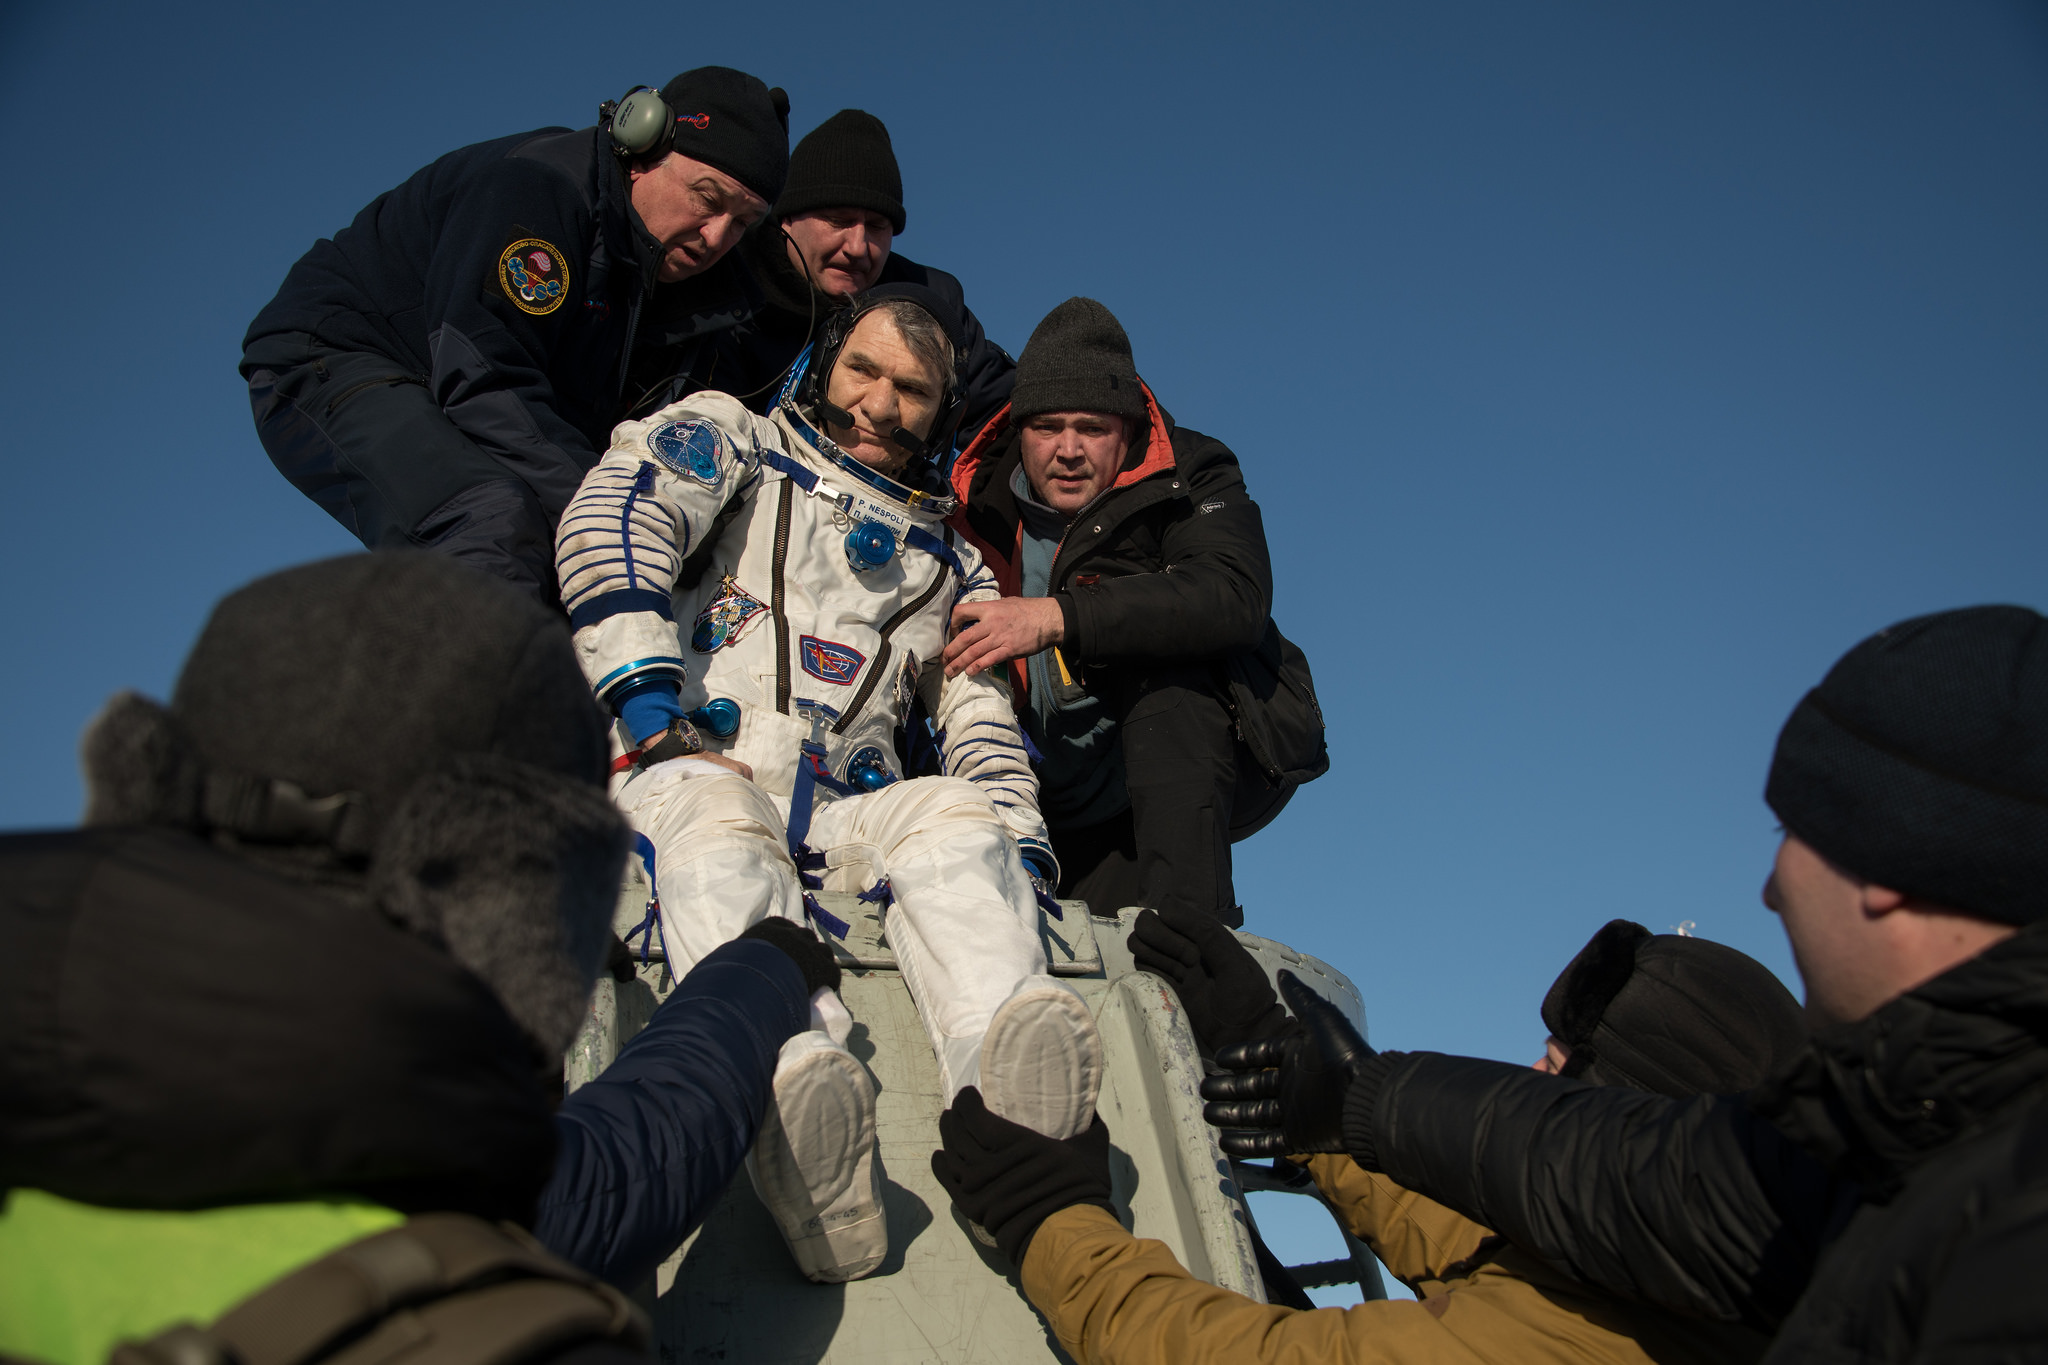 Paolo Nespoli is helped out of Soyuz MS-05. Credit: NASA/Bill Ingalls